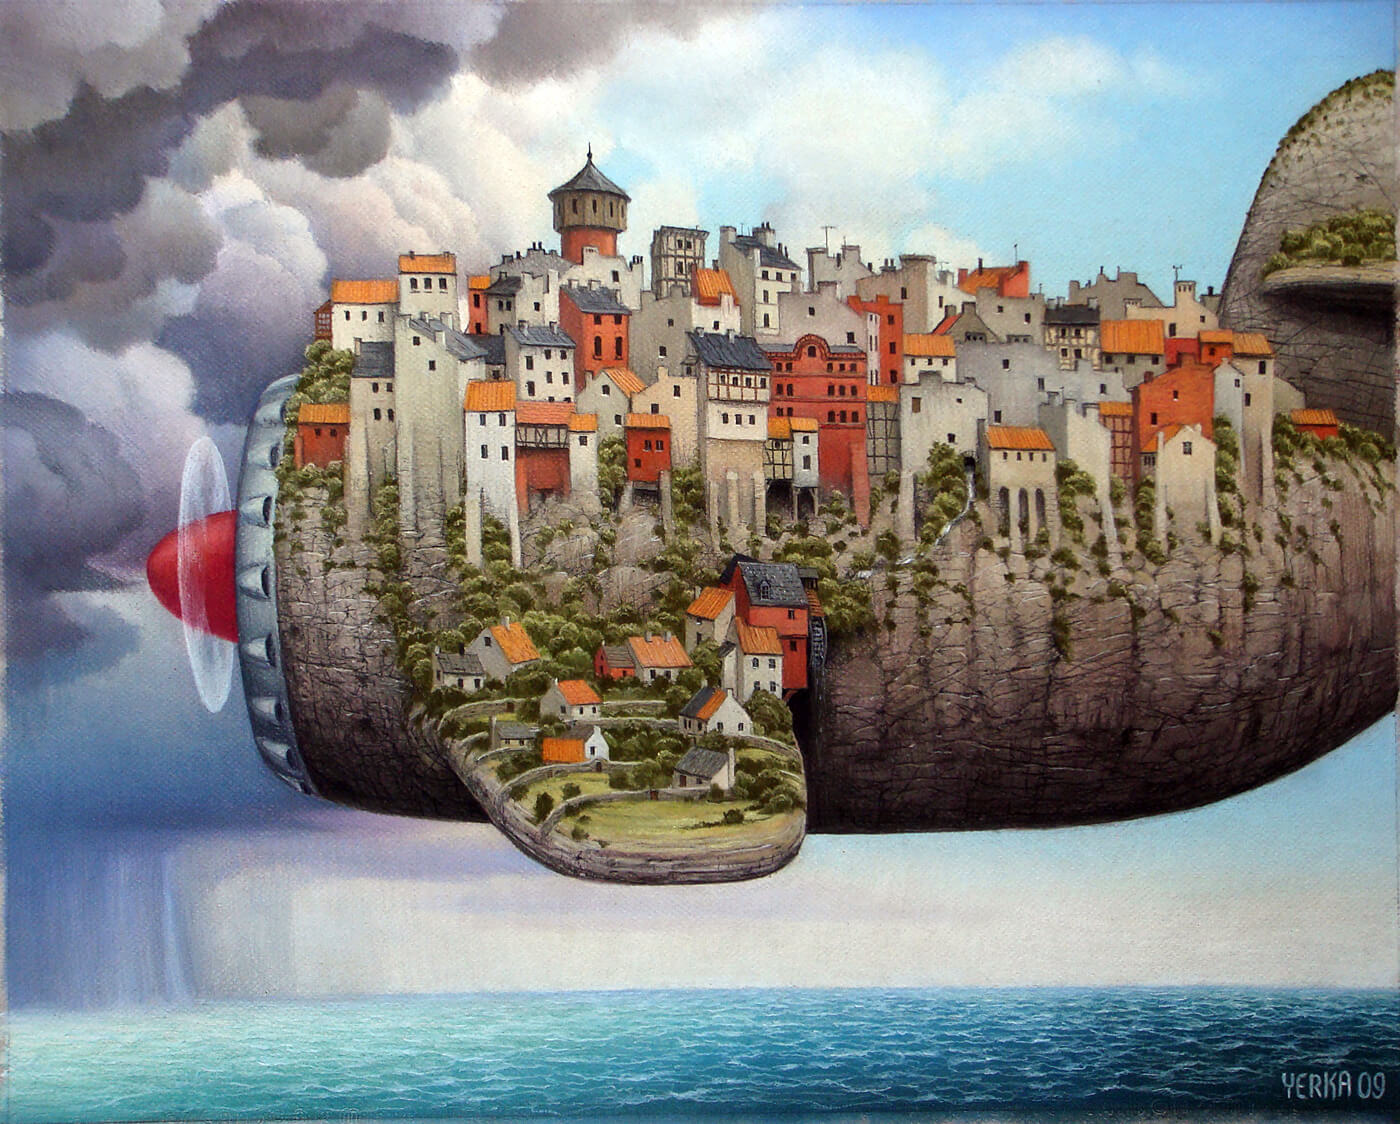 surreal paintings jacek yerka 8 (1)